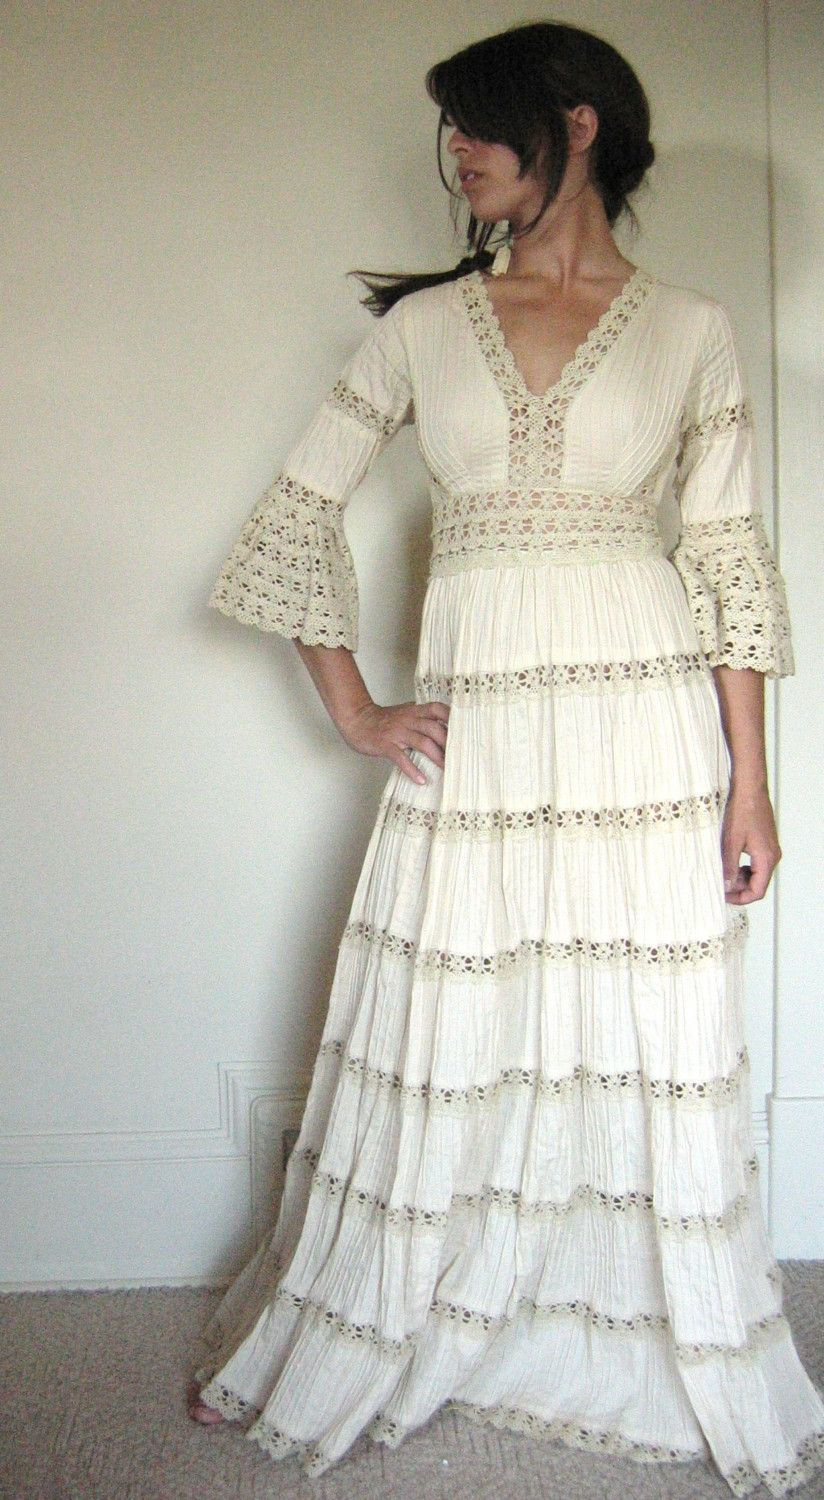 mexican wedding dress Vintage Mexican Cotton Wedding Dress XS or S by valuevintage I have feelings for this dress